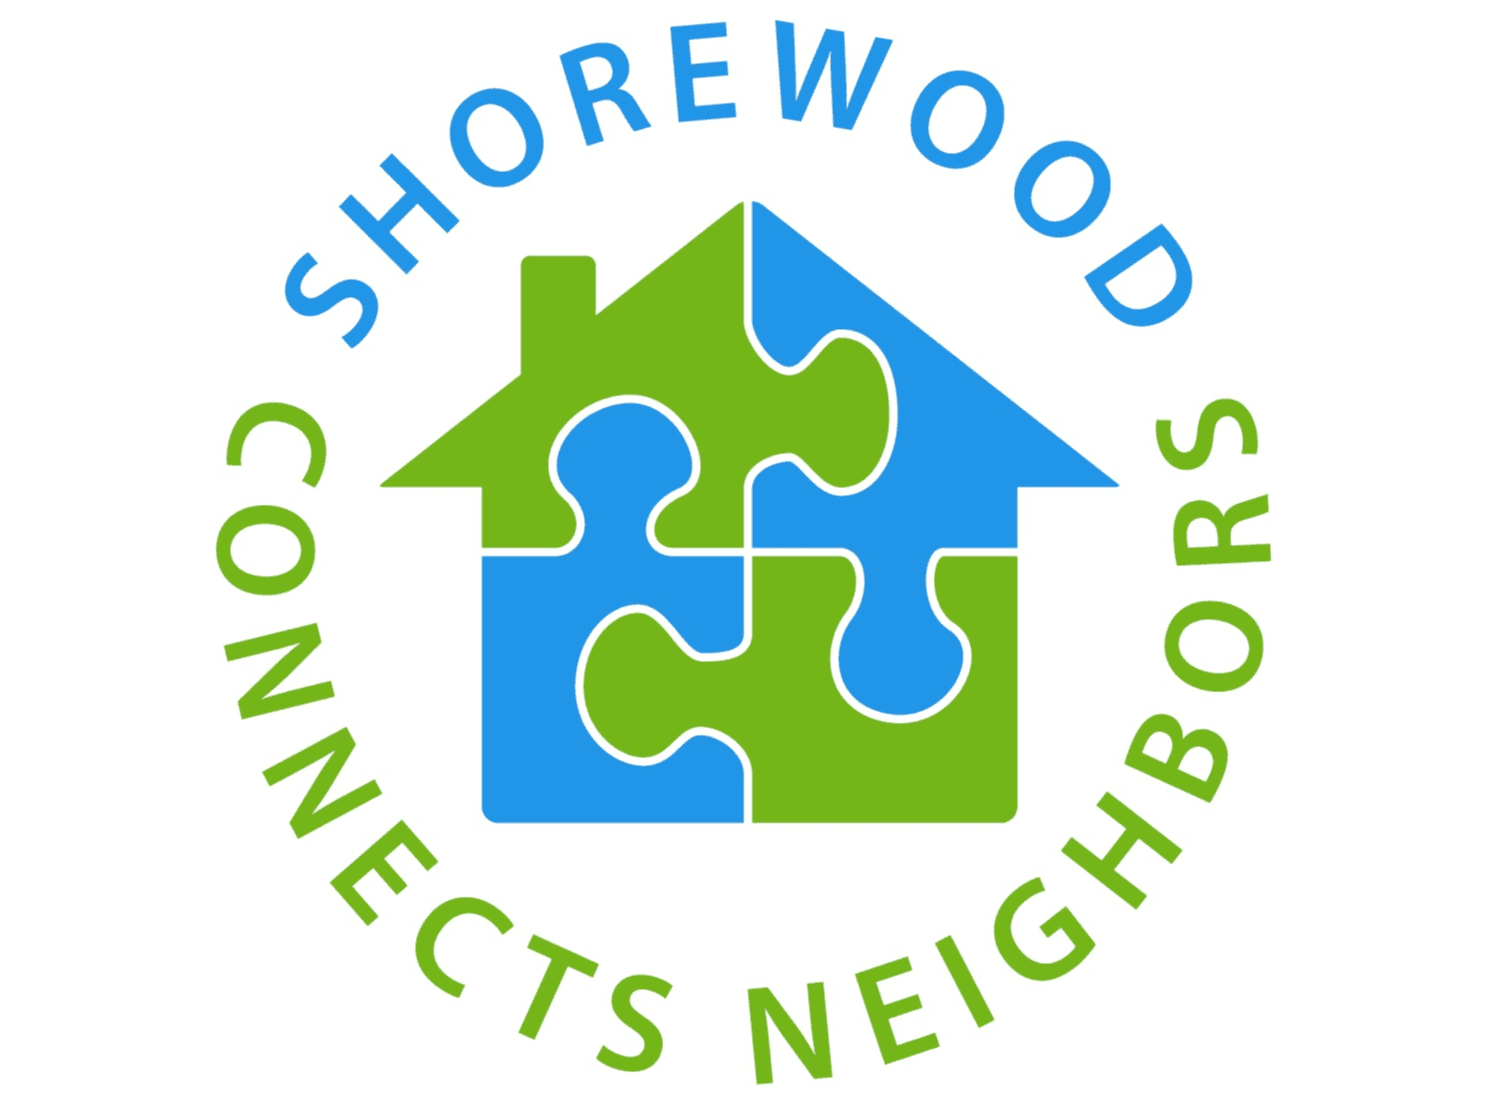 shorewood-connects-large